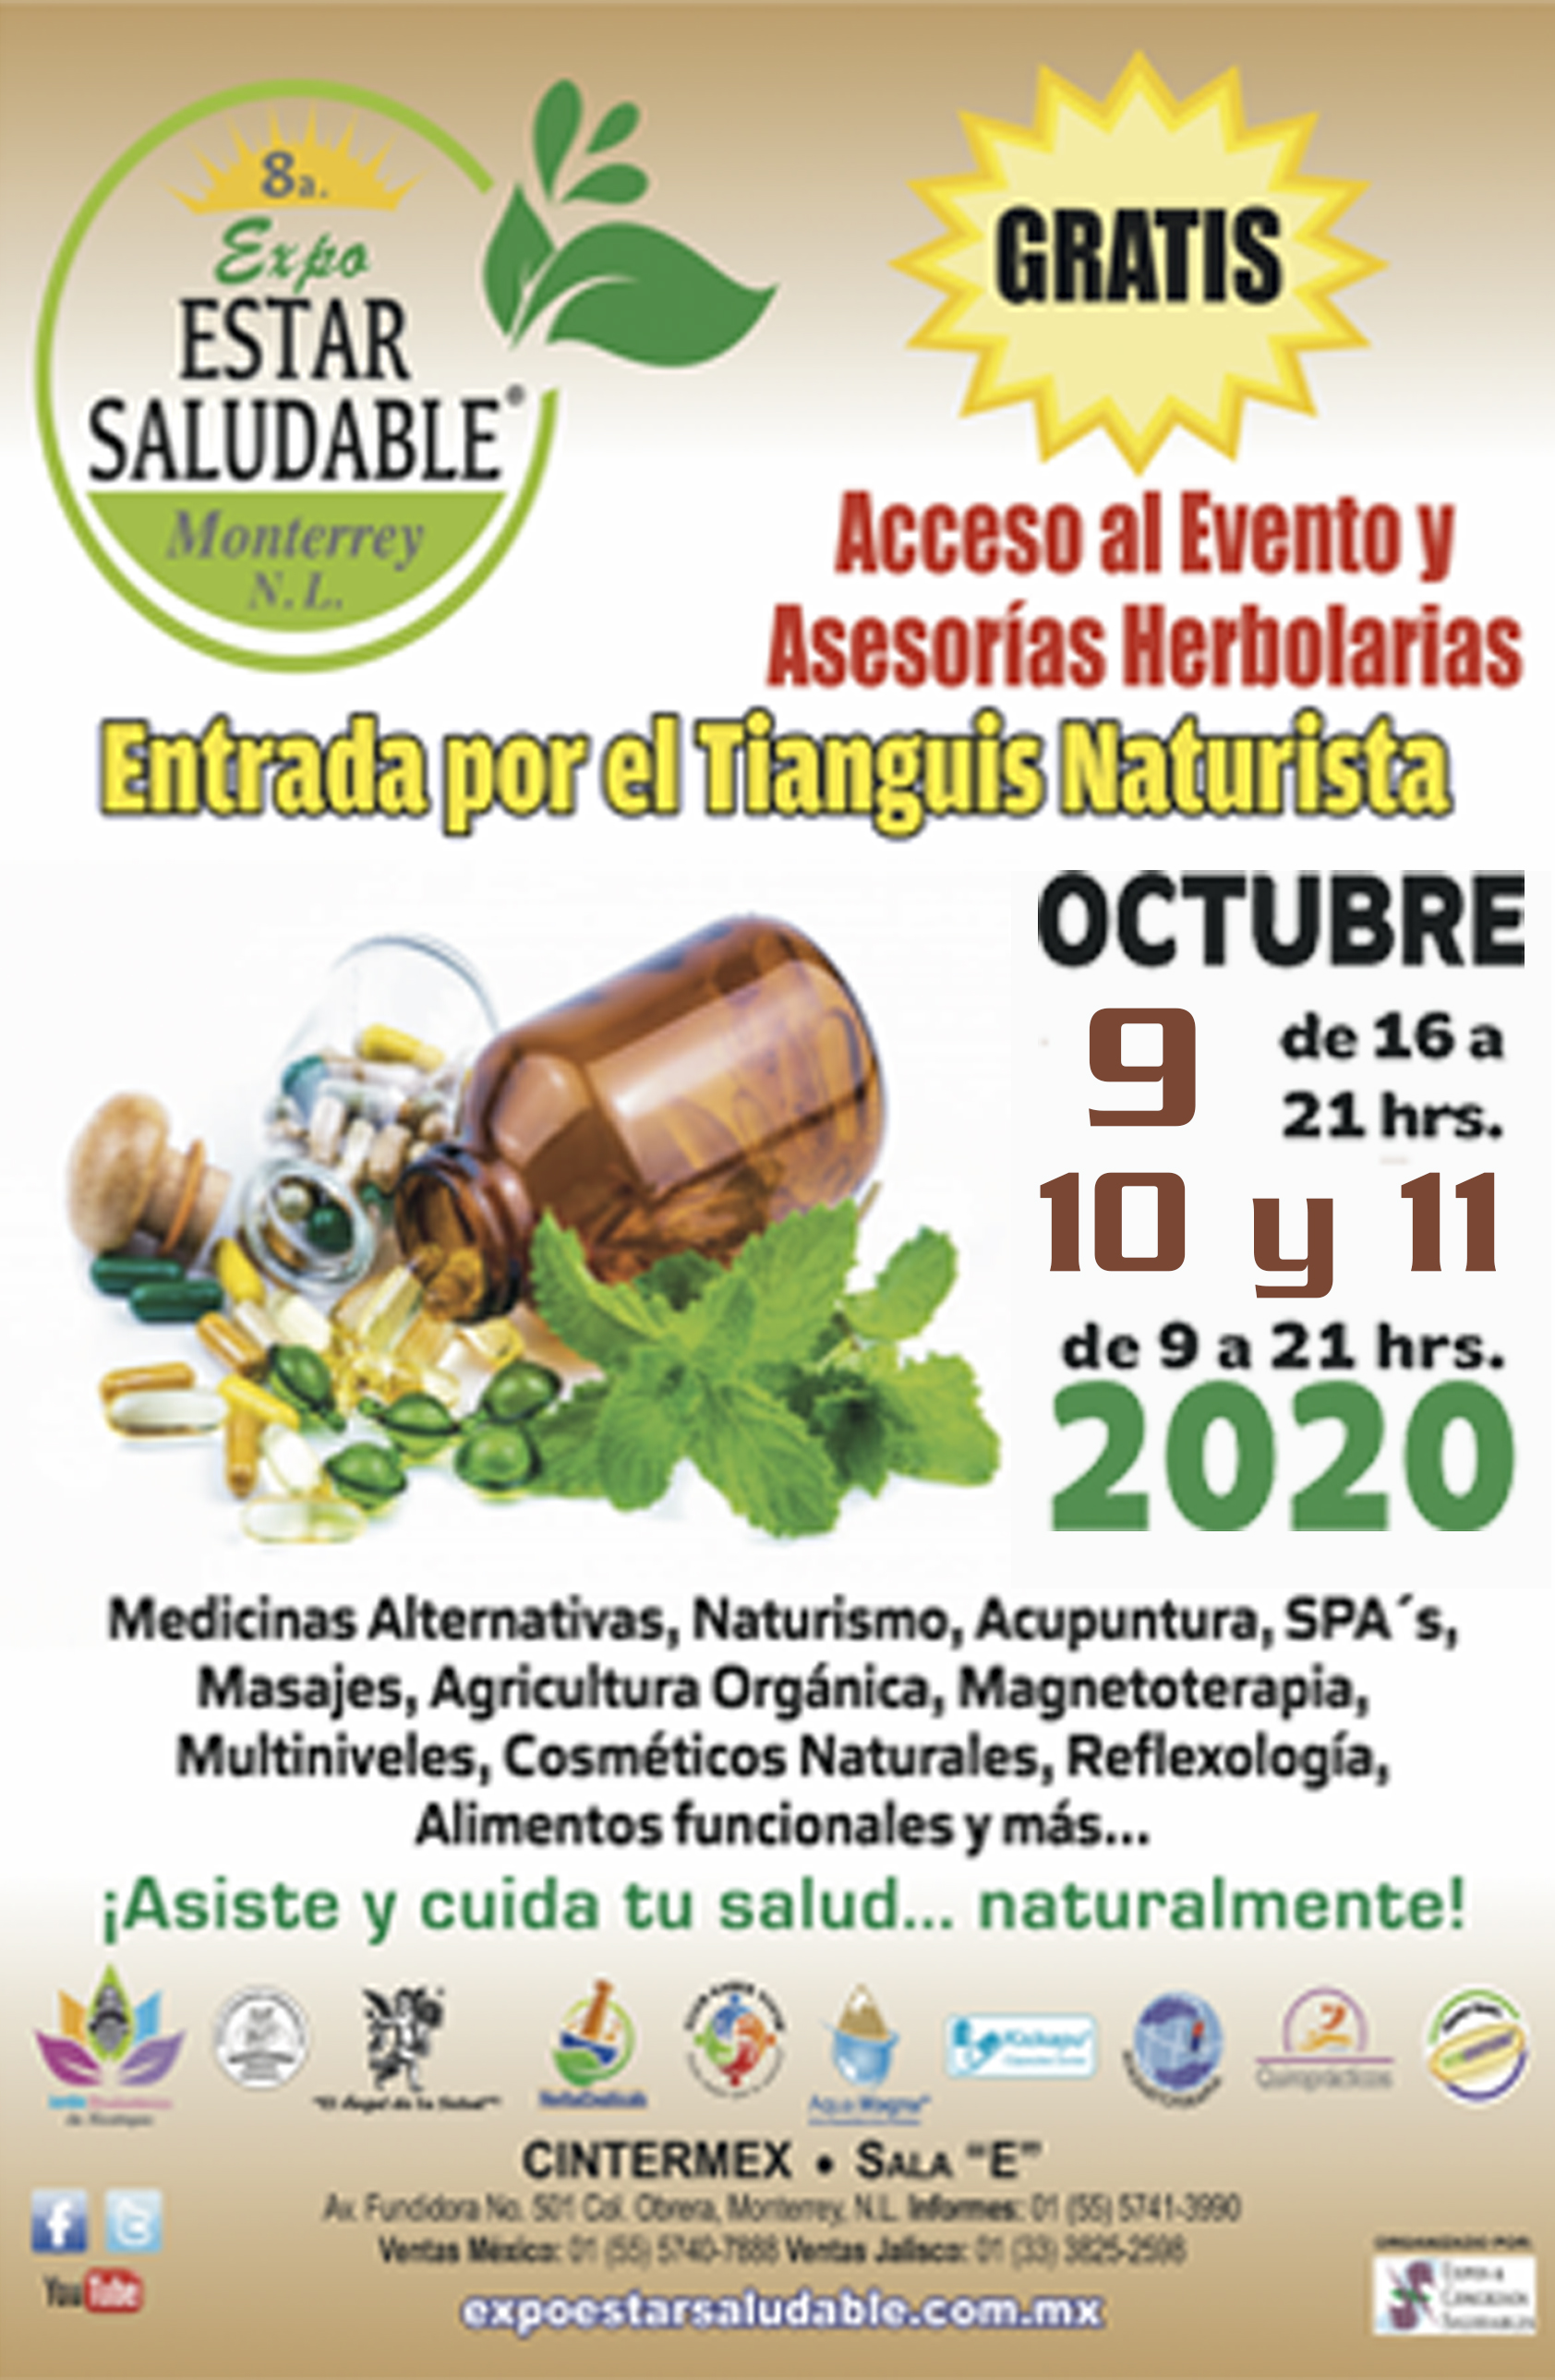 EXPO ESTAR SALUDABLE